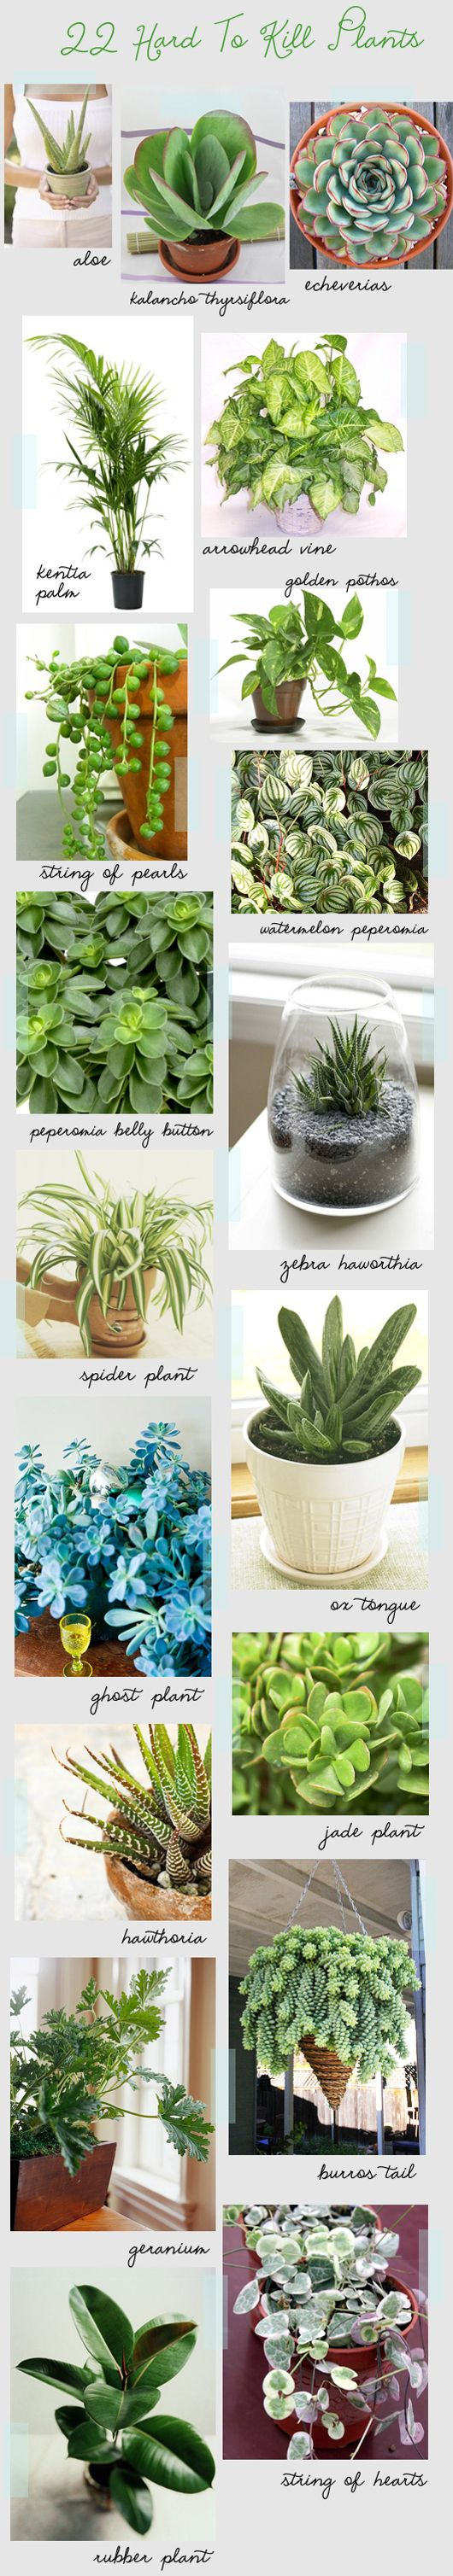 indoor plant list.